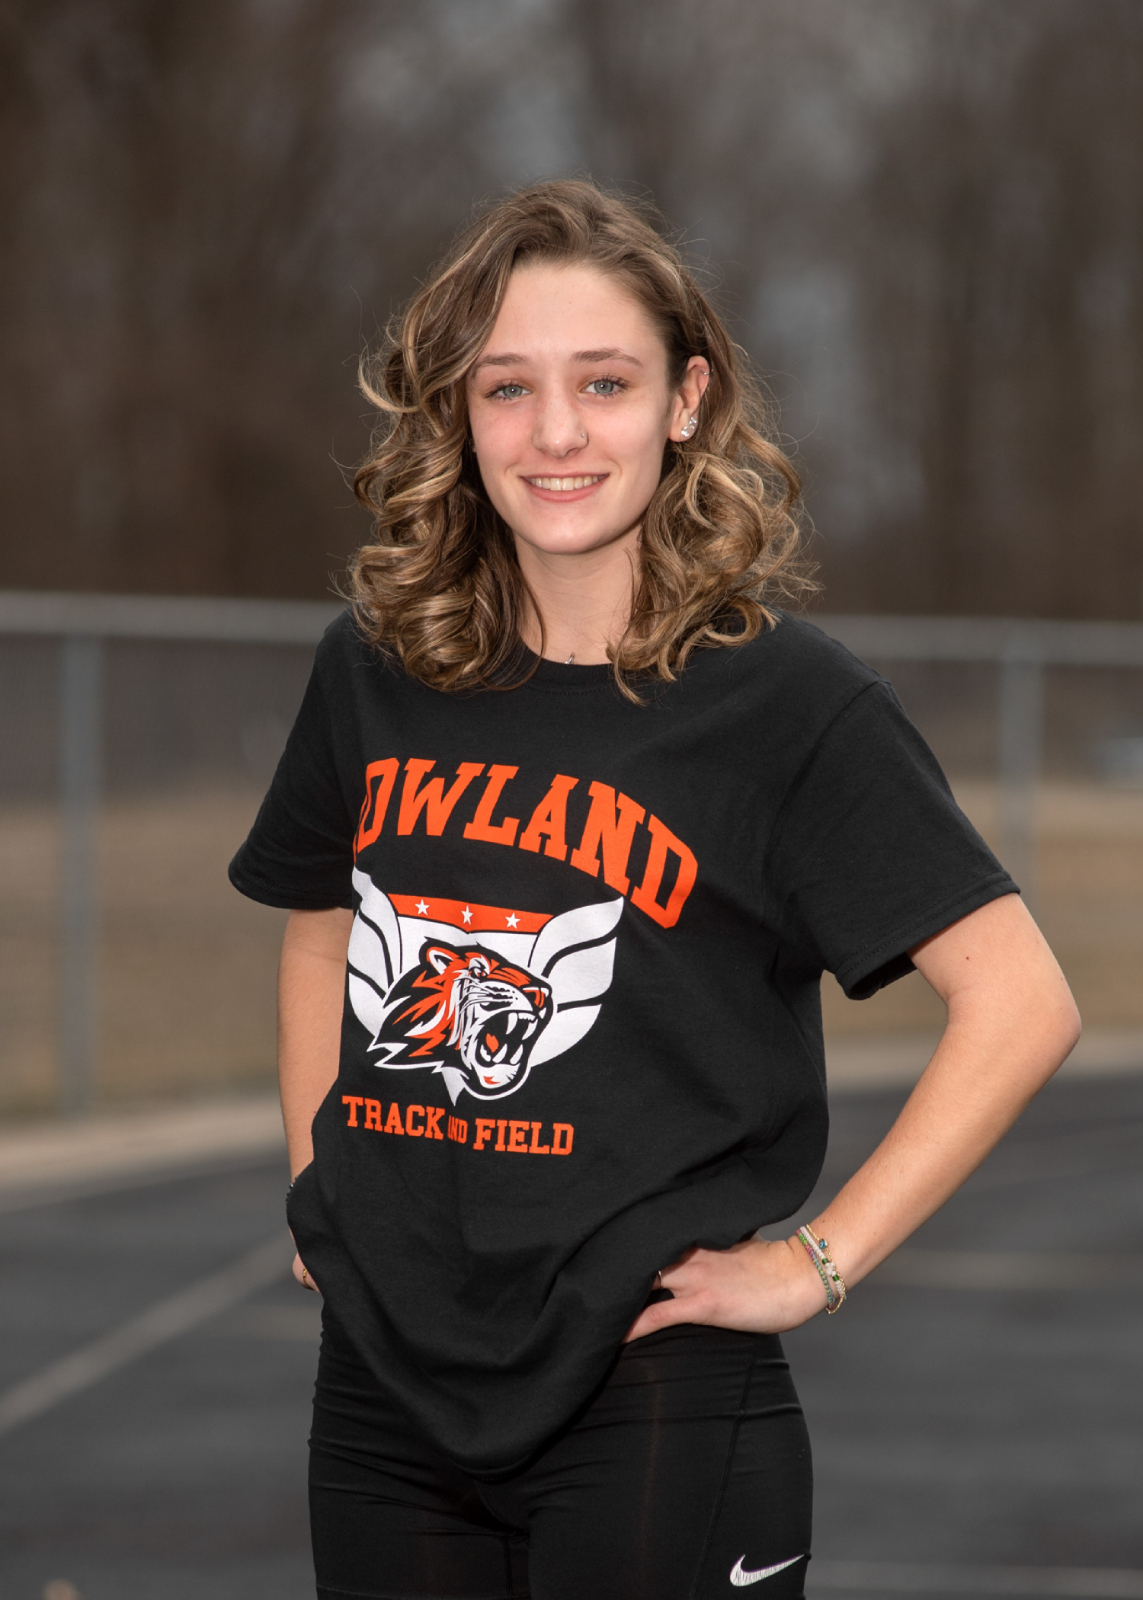 Messages of hope: Howland runner giving back through her small business